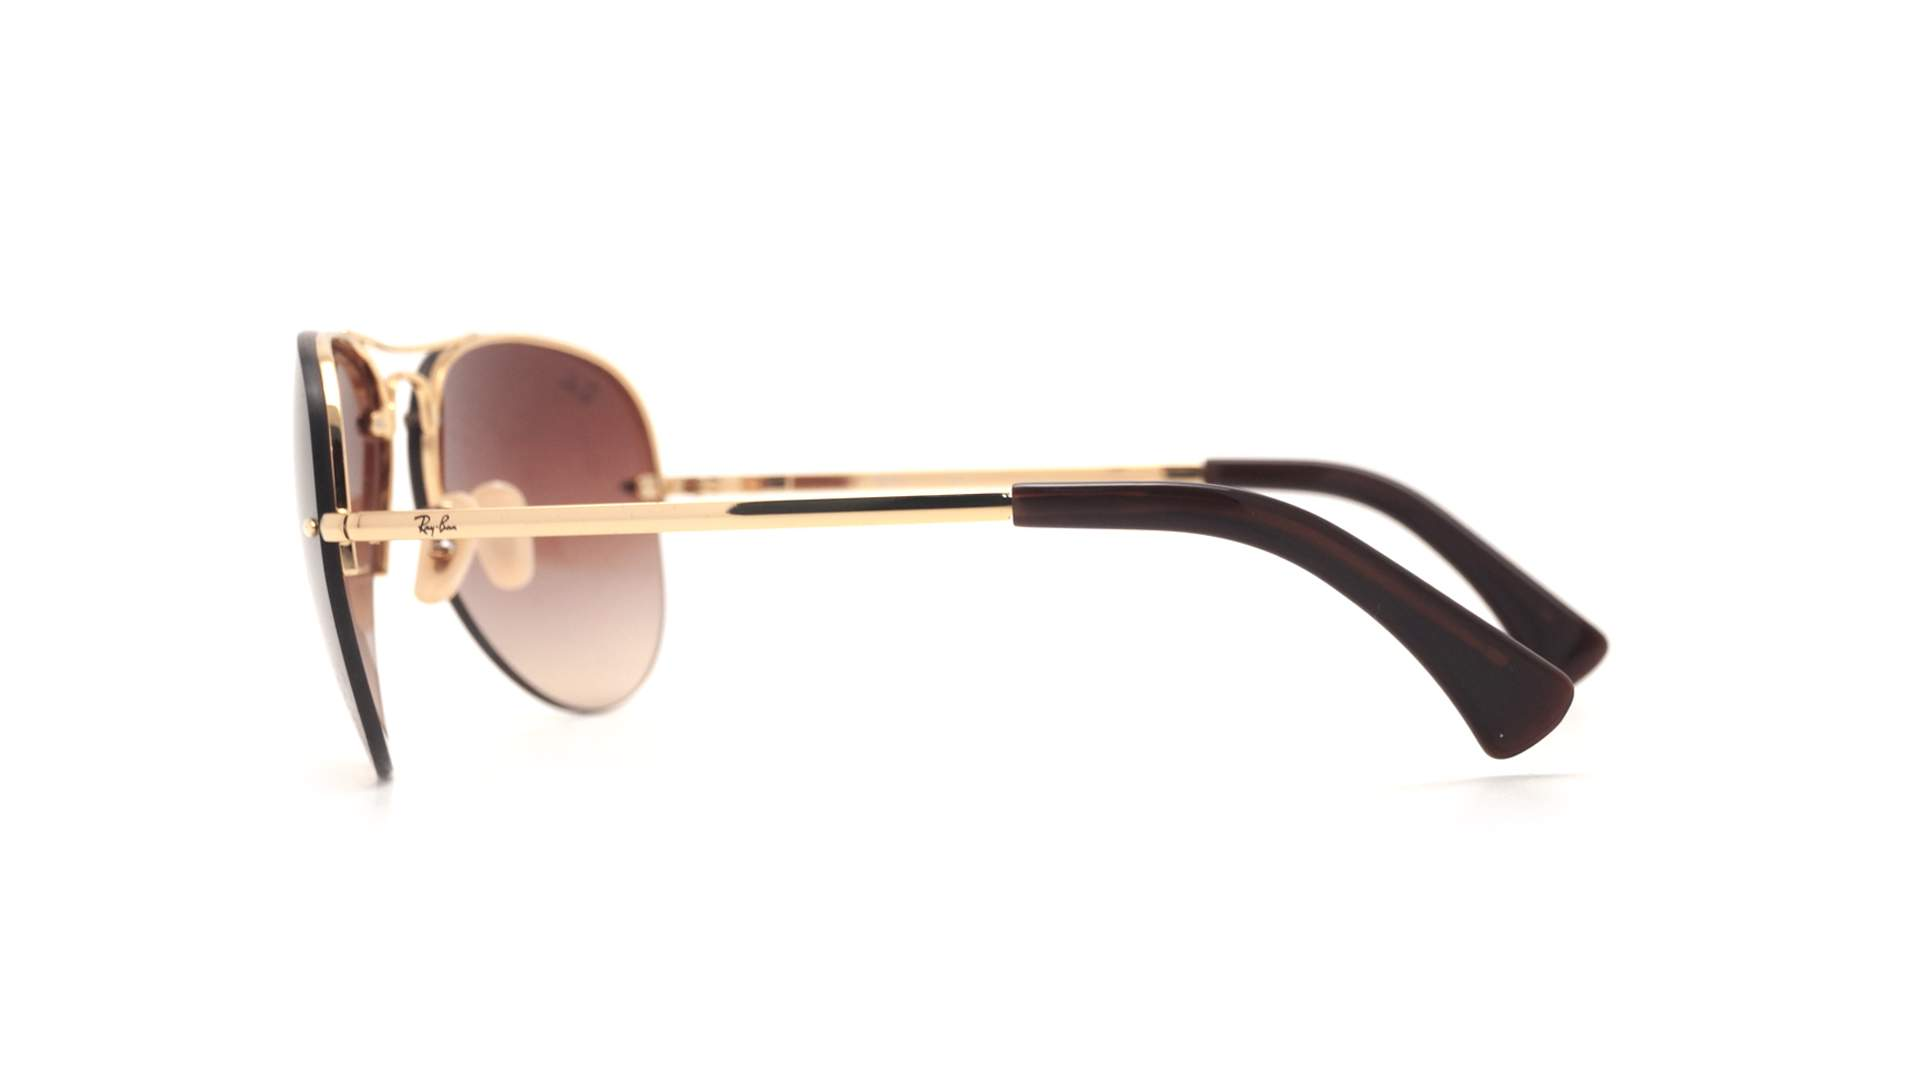 f6837b5caf Sunglasses Ray-Ban RB3449 001 13 59-14 Gold Large Gradient